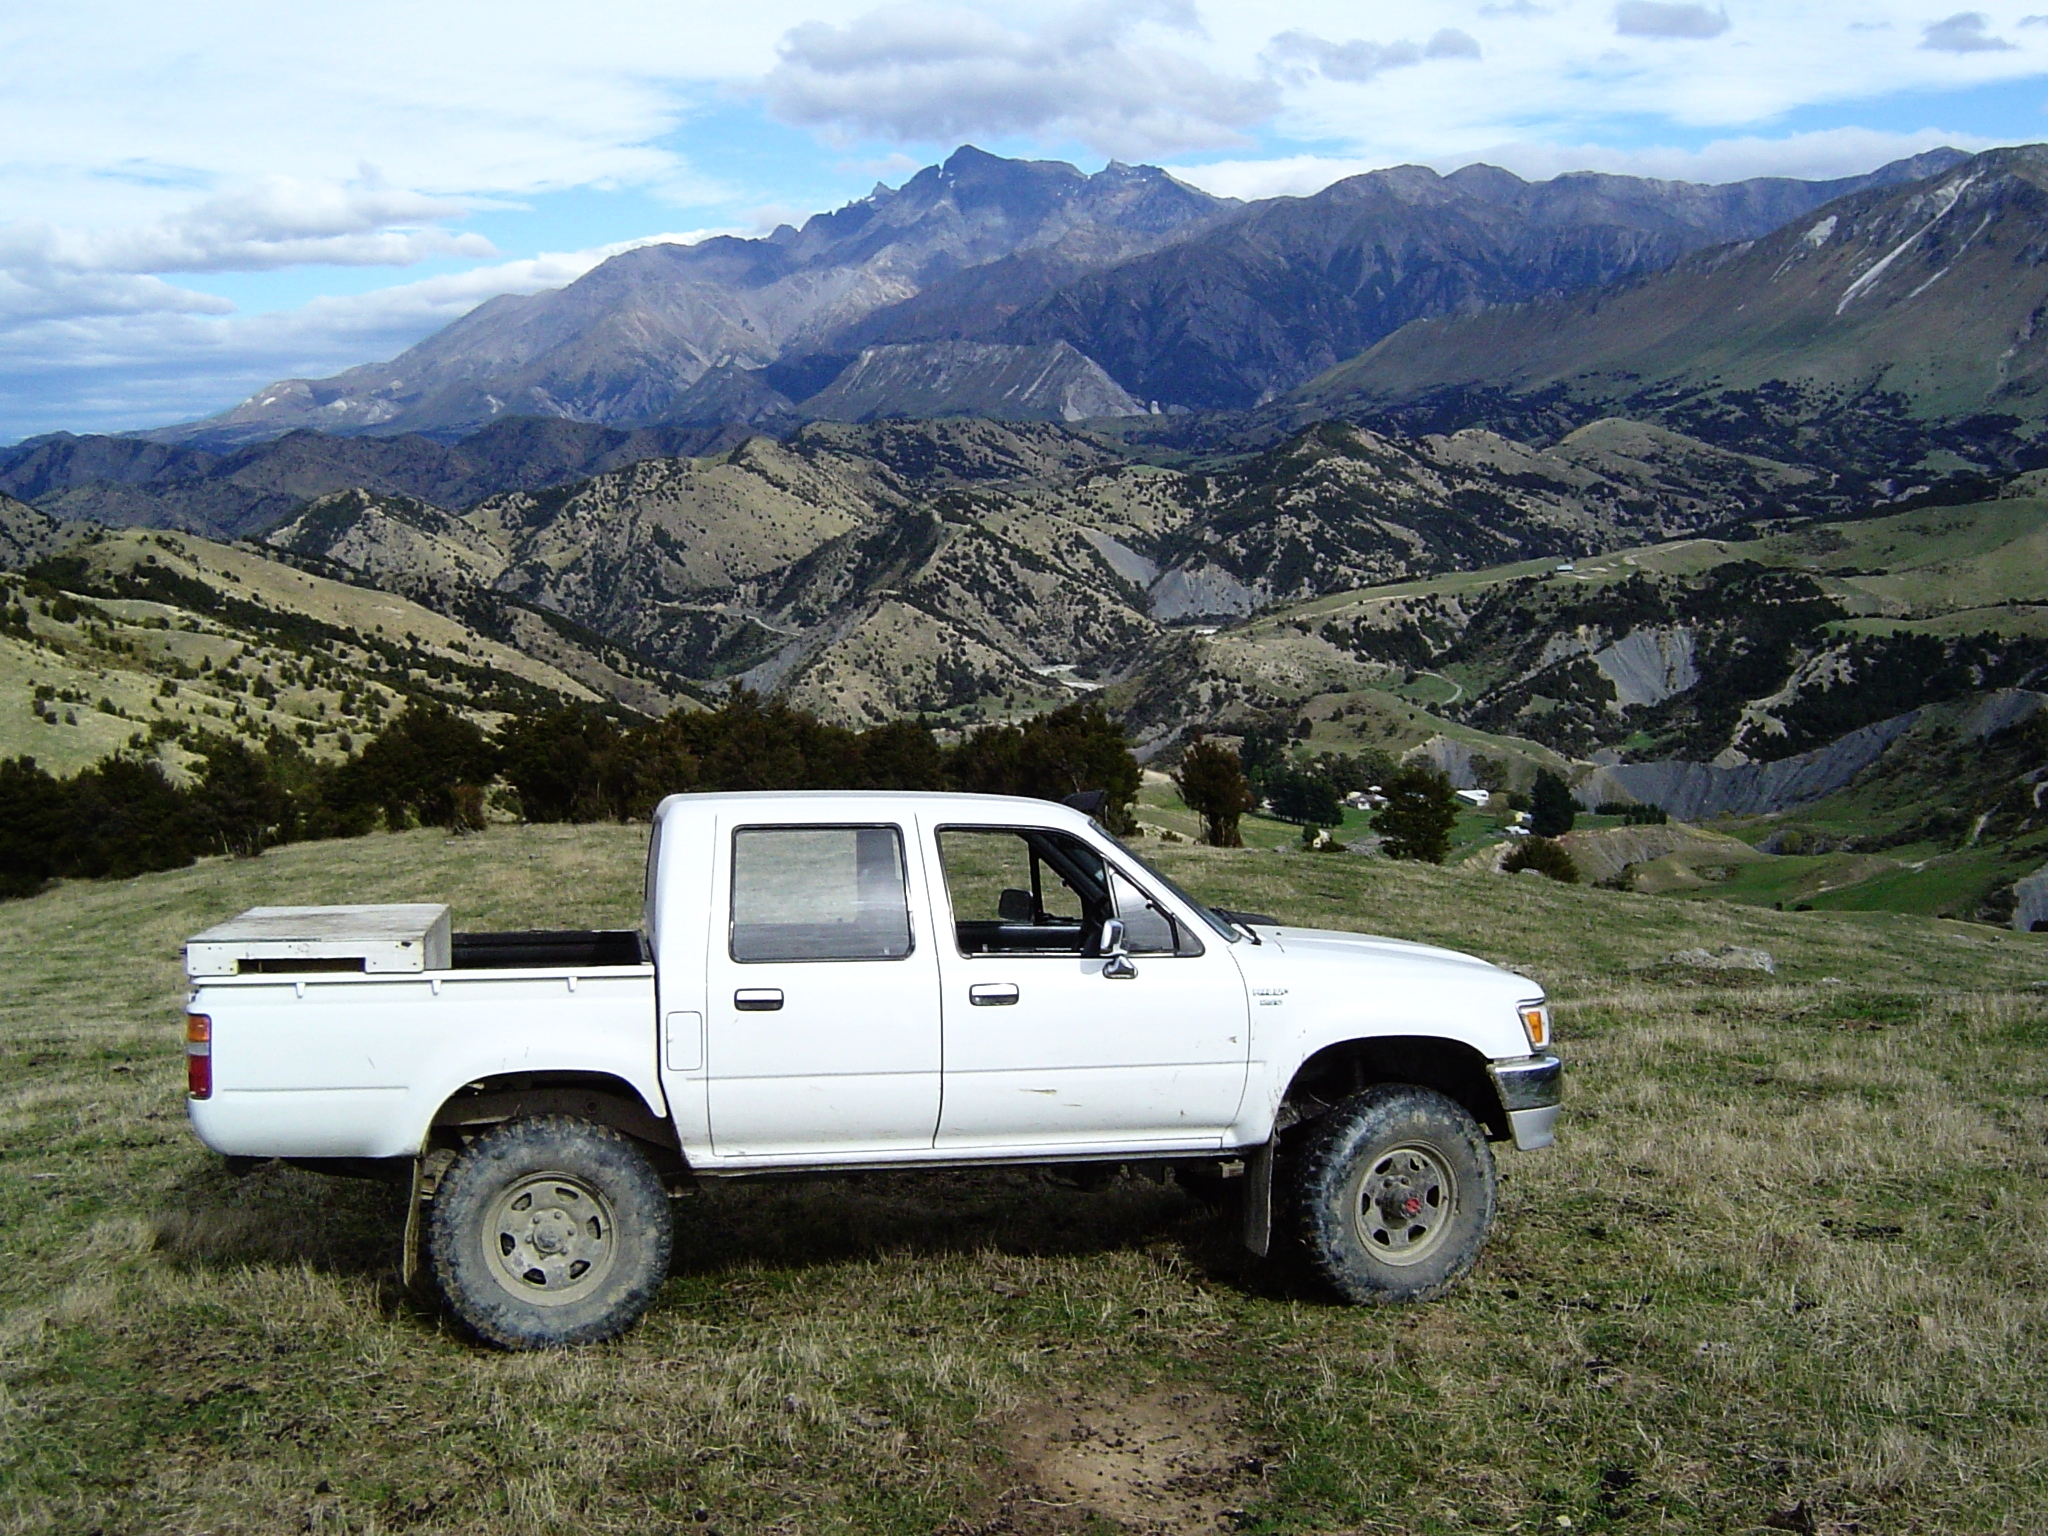 The authors 1998 LN106 Toyota Hilux